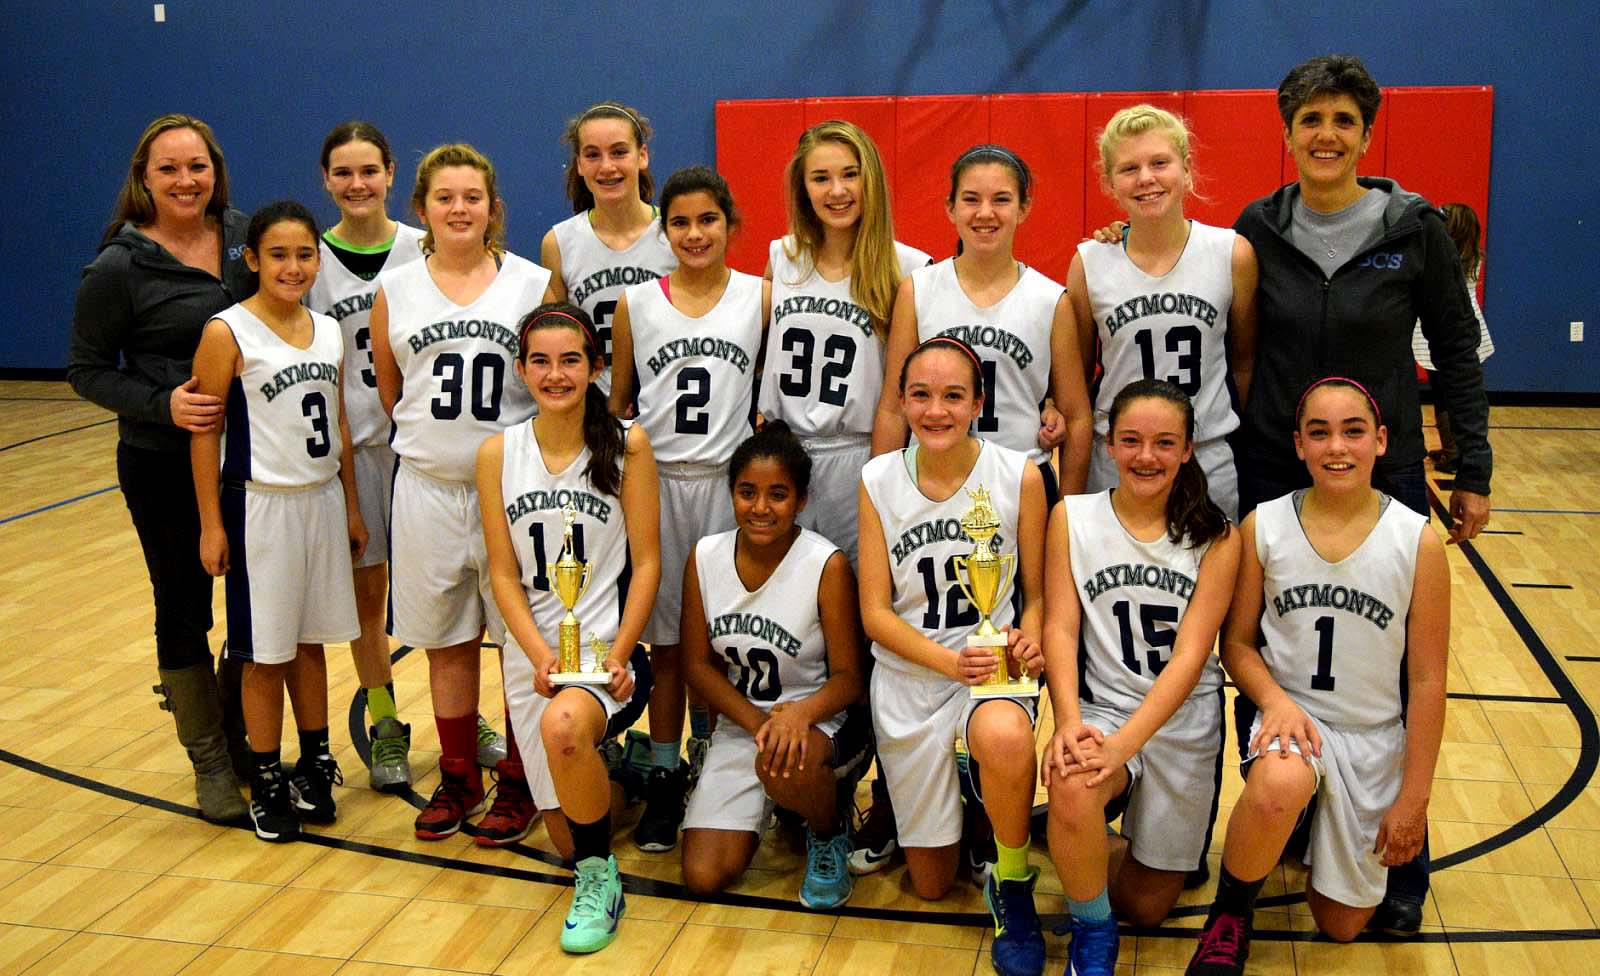 Baymonte Girls' Basketball Finishes Strong in the BACSAL Tournament